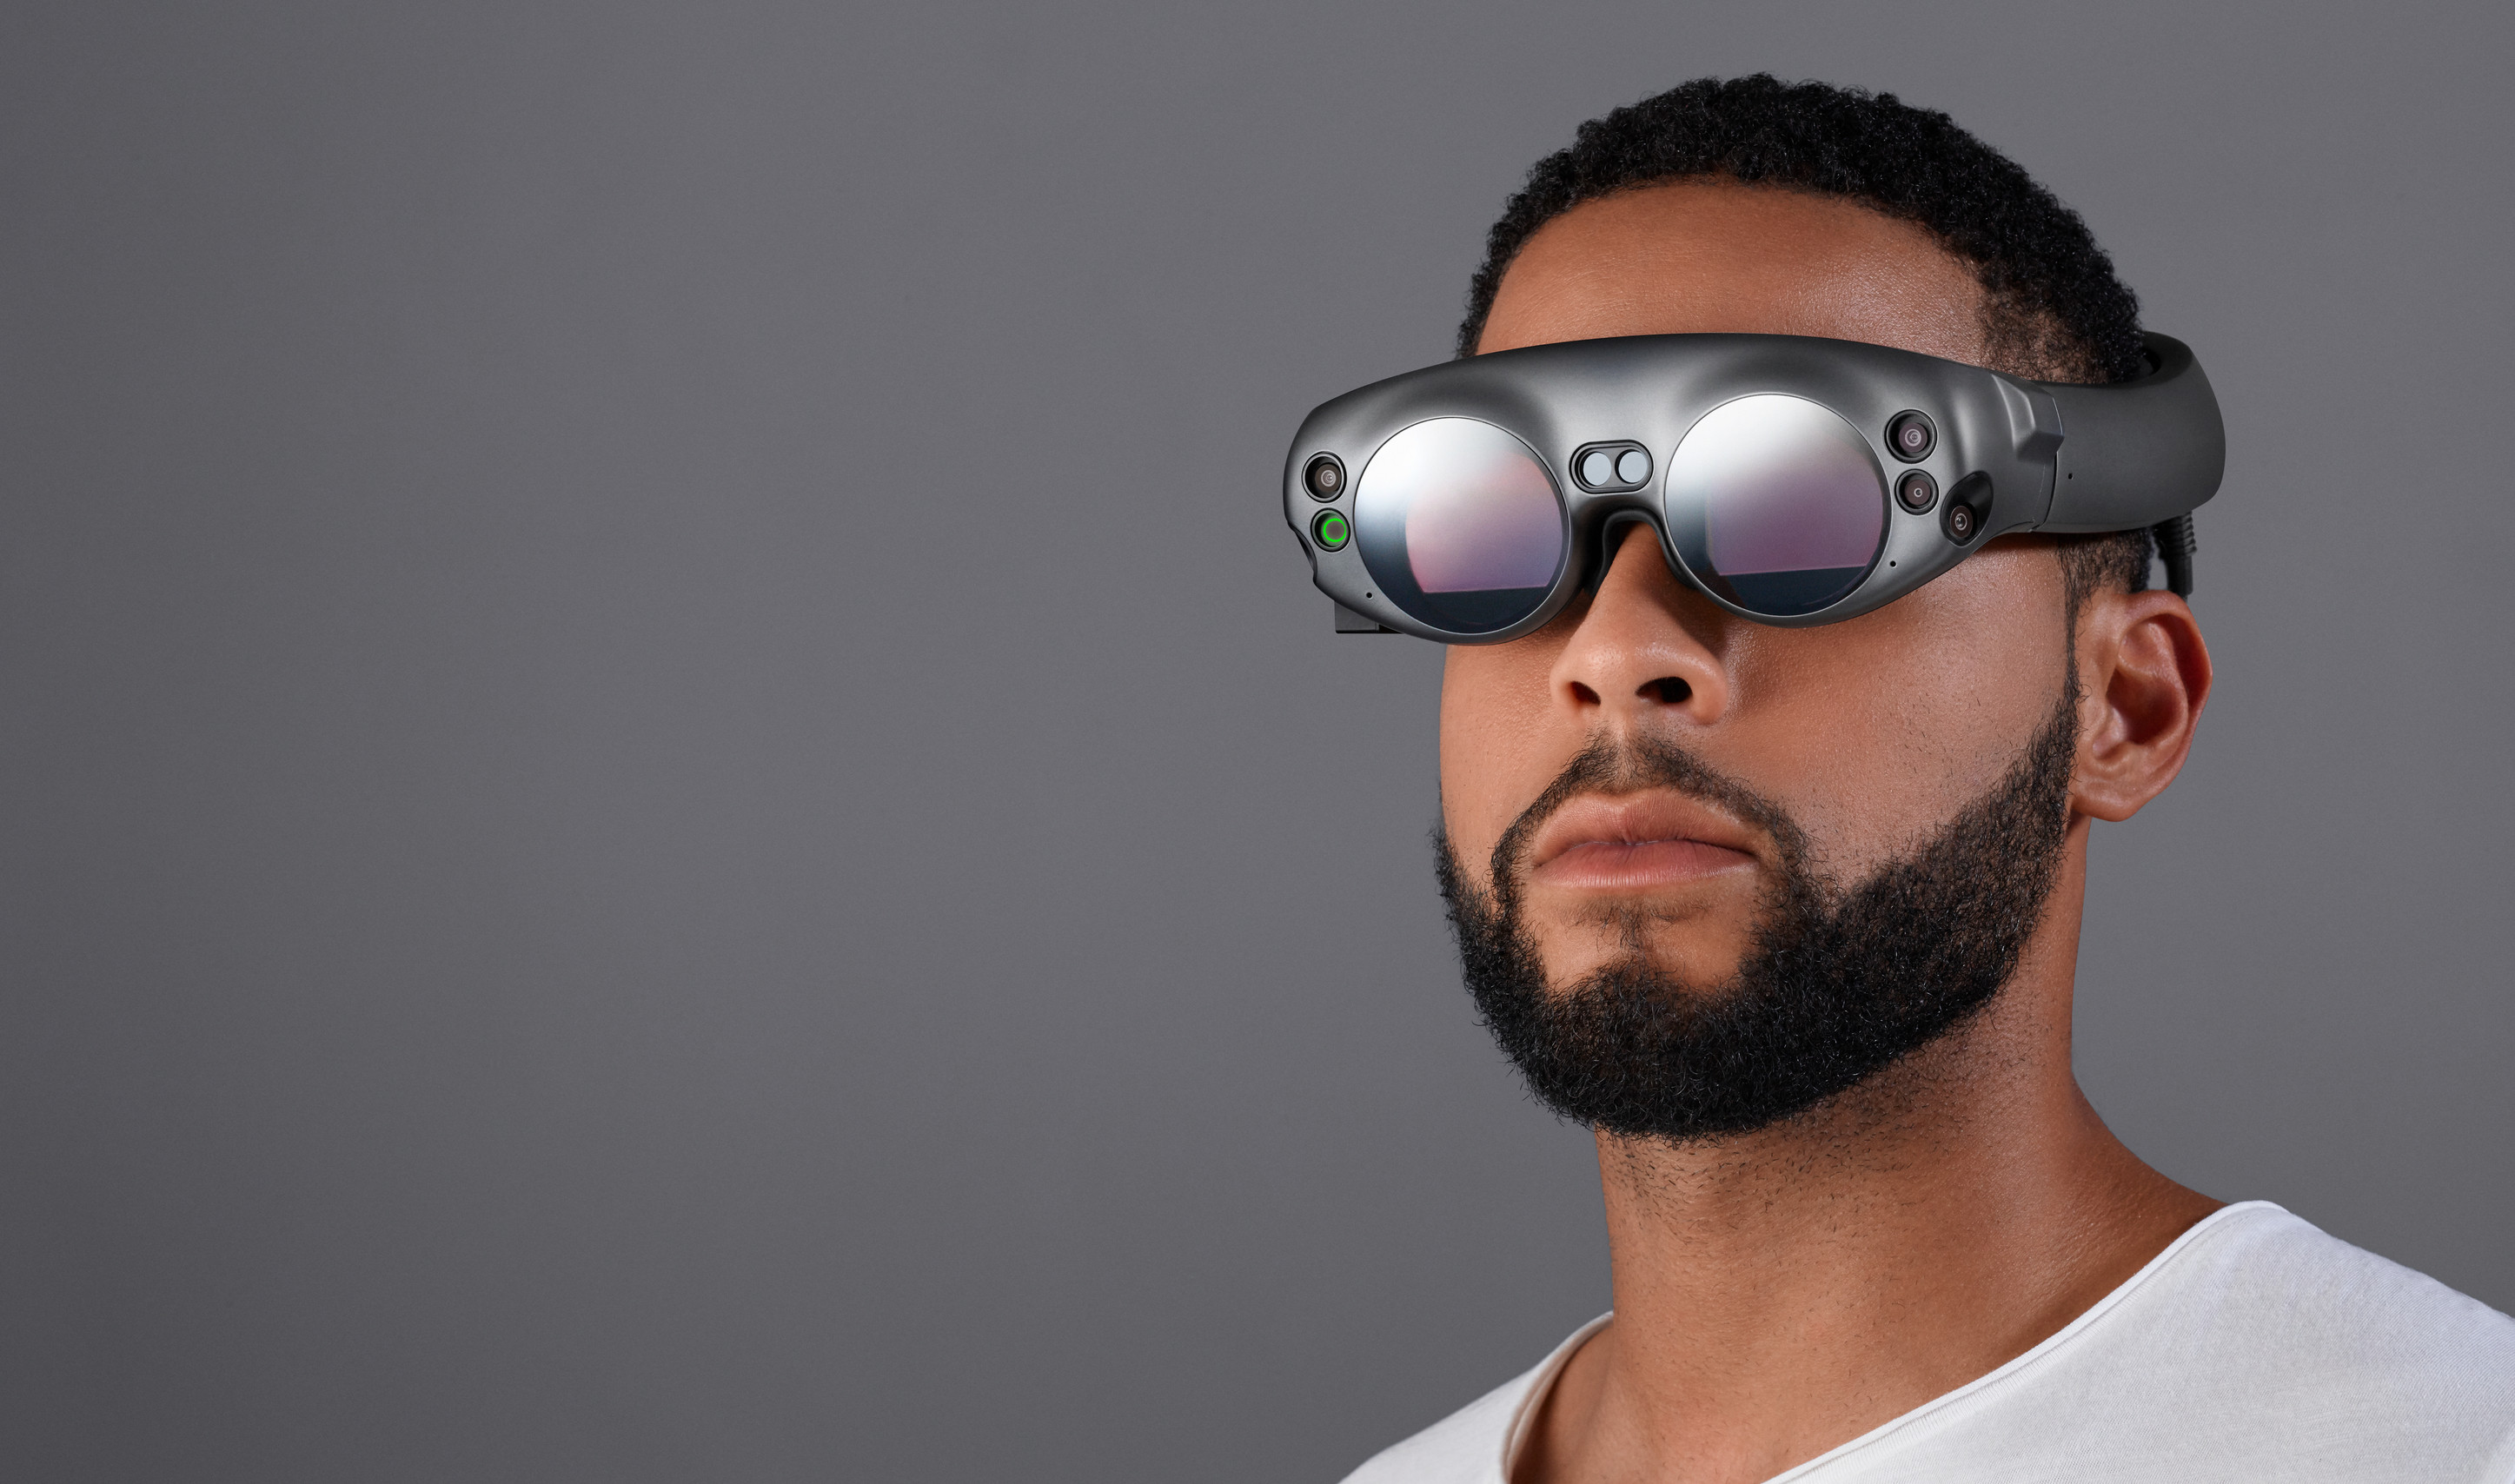 Secretive startup Magic Leap finally unveils its AR headset